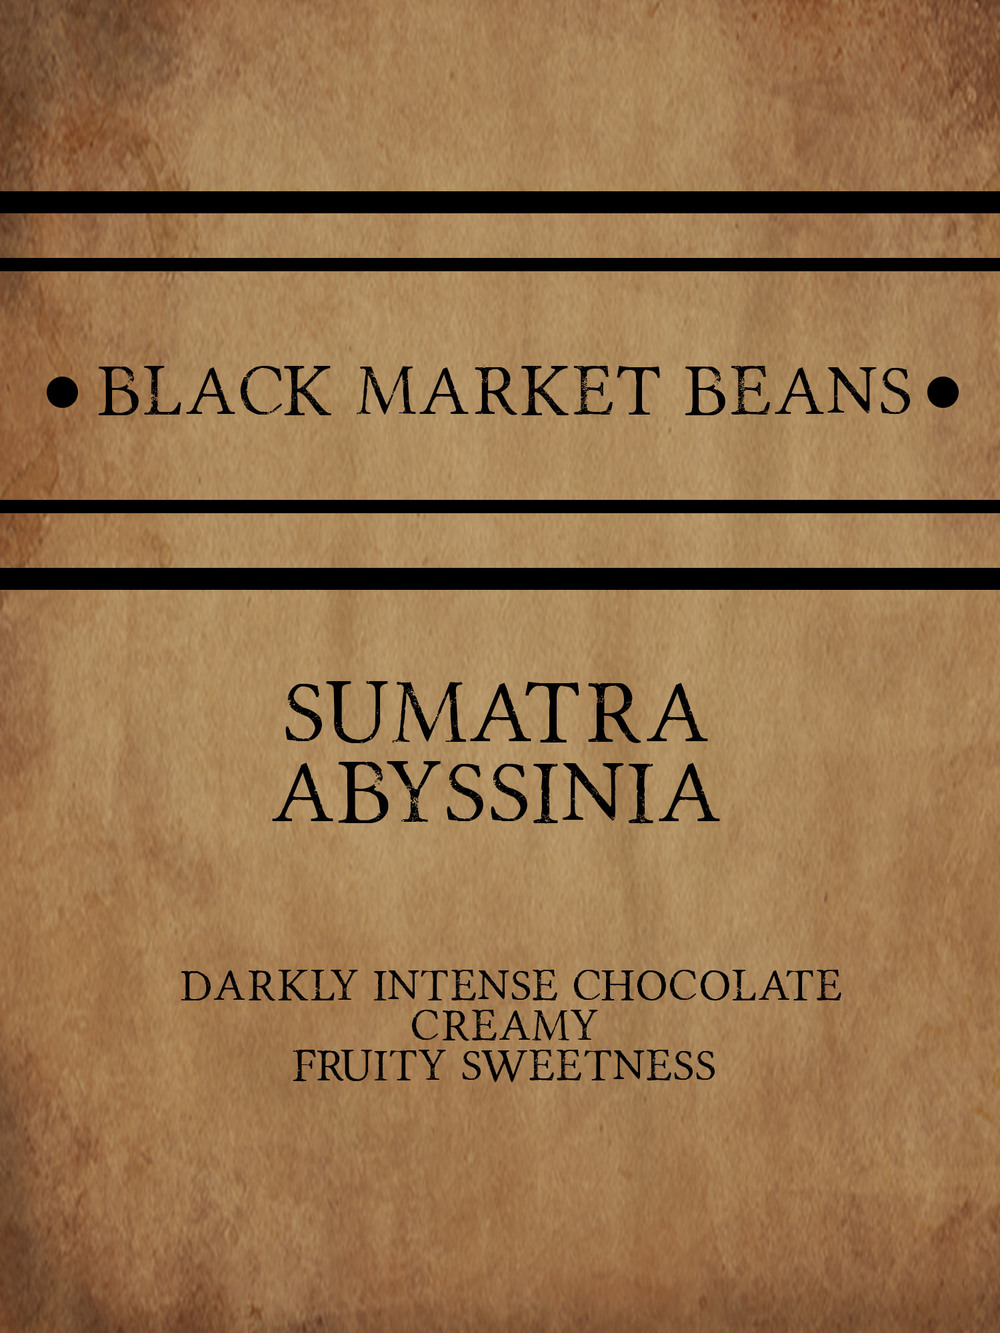 coffee_card_Sumatra_Abyssinia.jpg